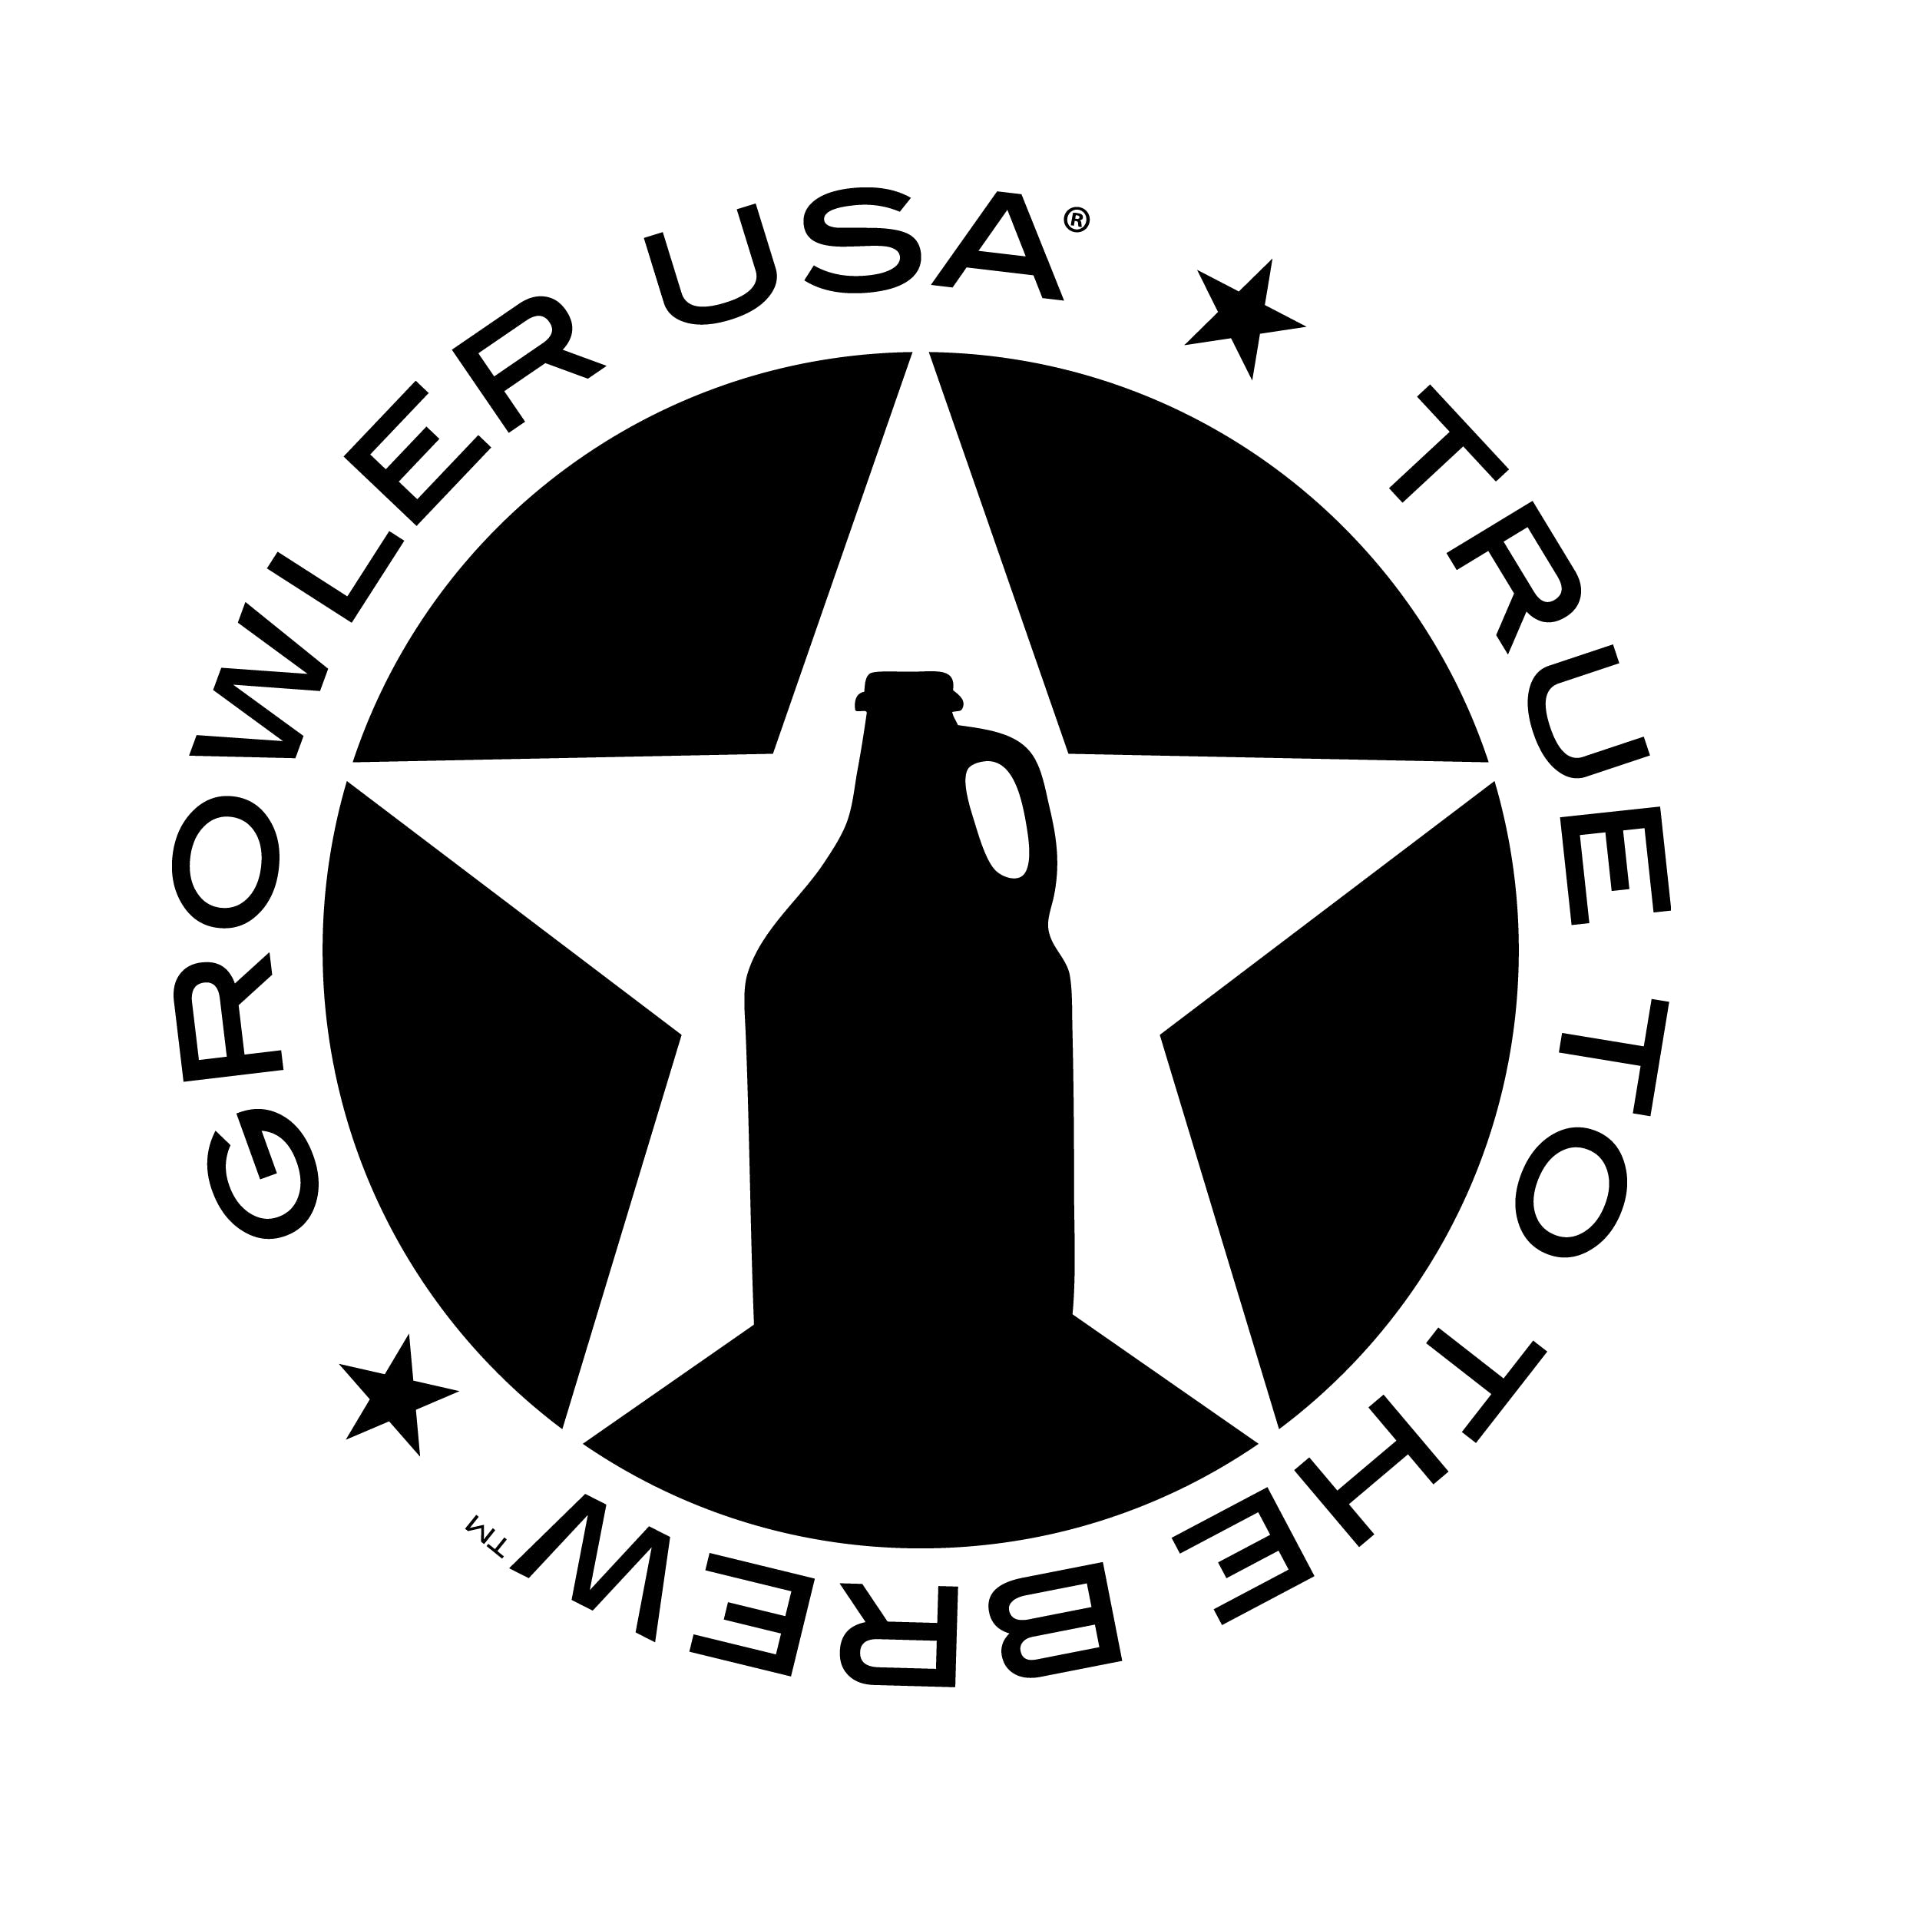 What\'s On Tap - Growler USA